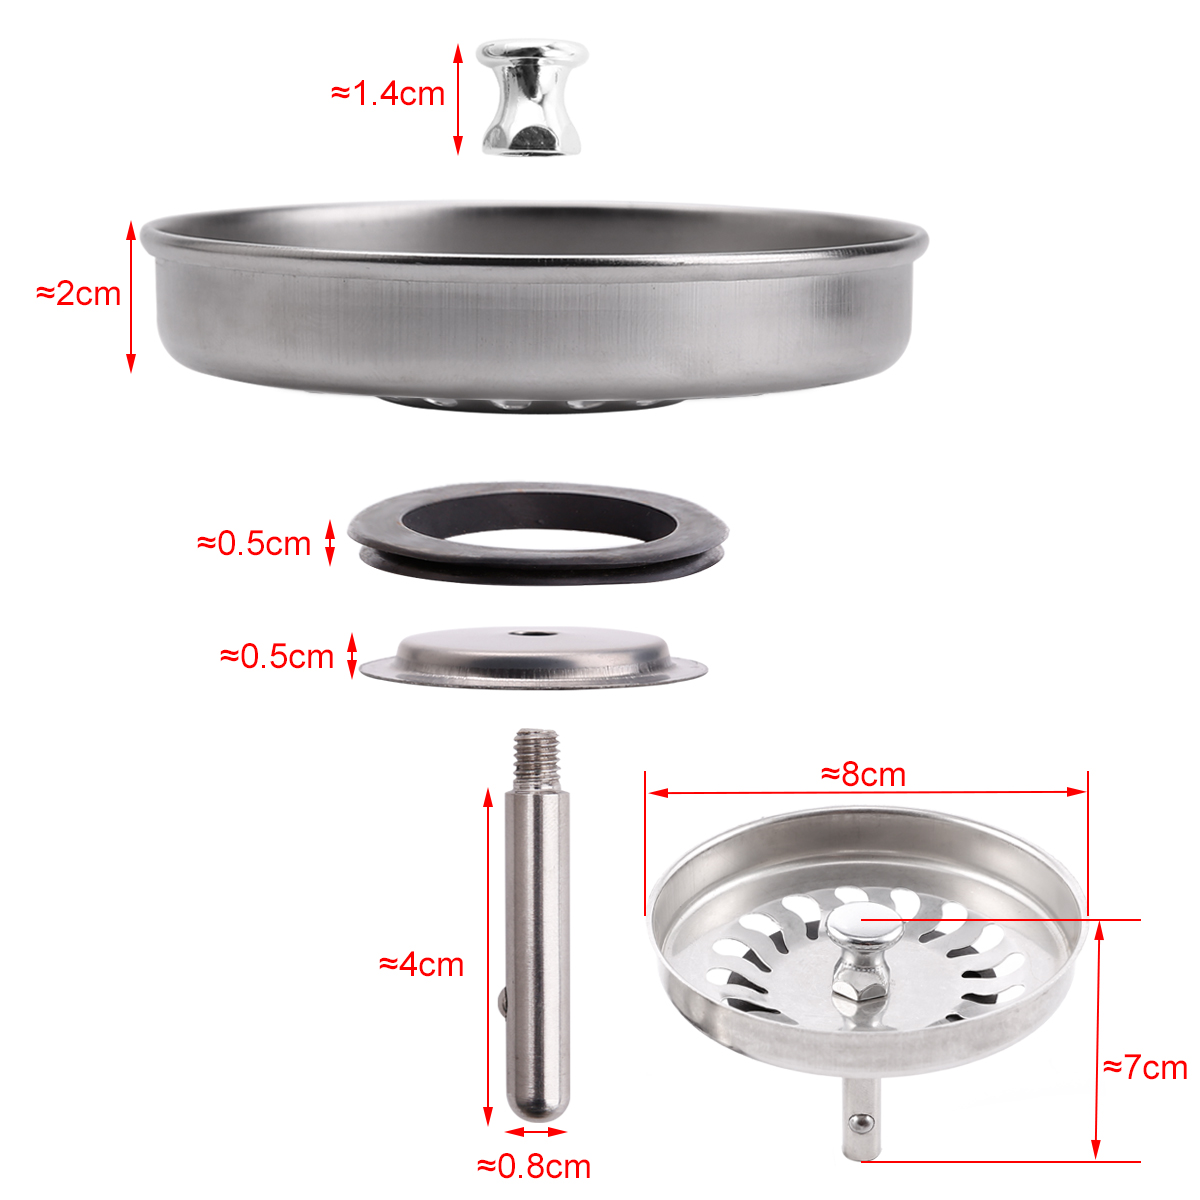 replacing a kitchen sink canisters ceramic 1 4x strainer bathroom basin plug hole filter